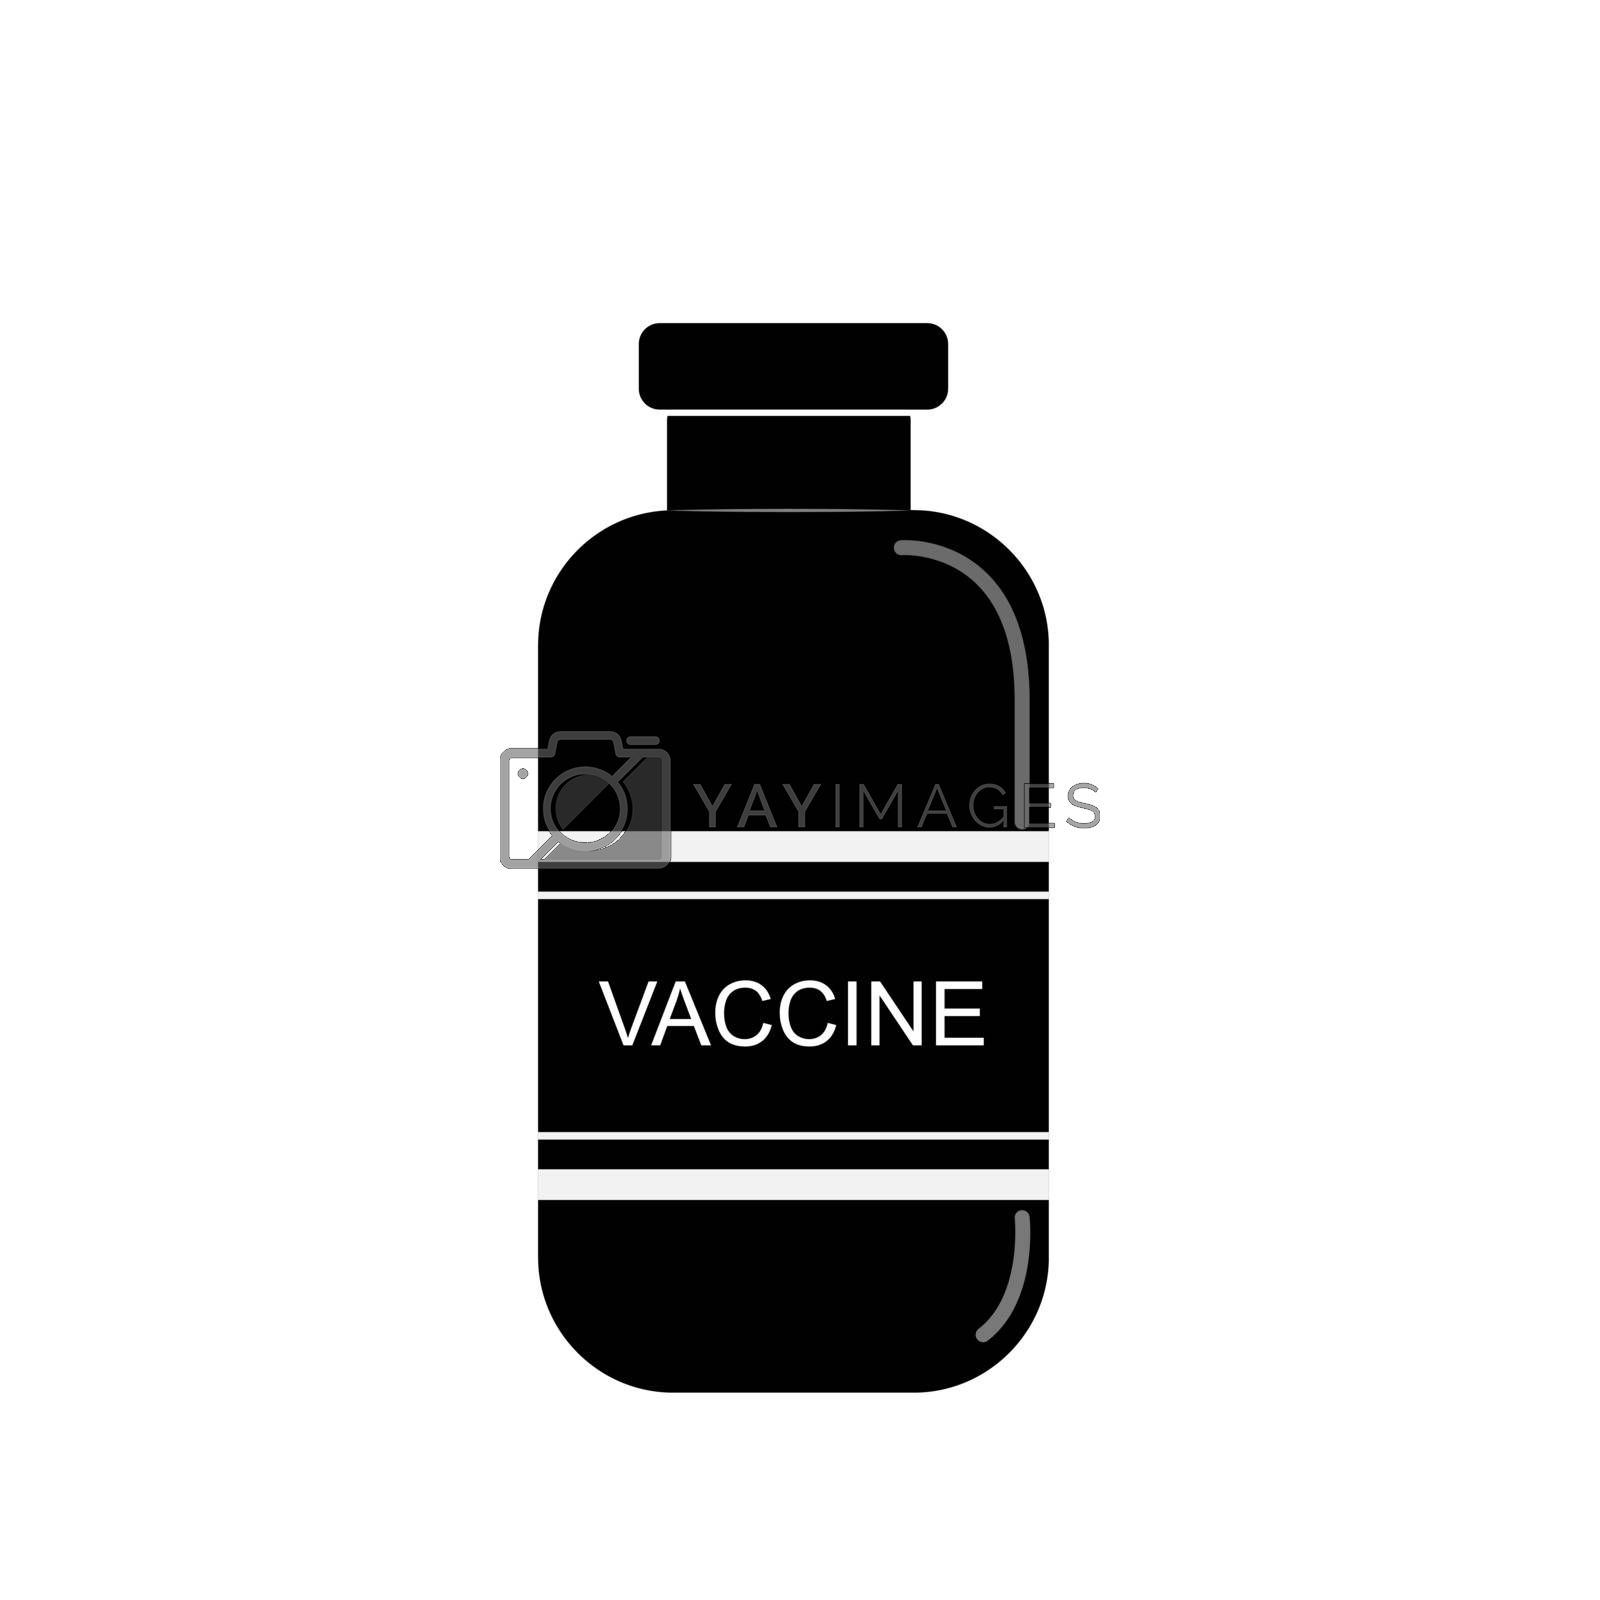 vaccine bottle, flat design, simple pattern for design and decoration